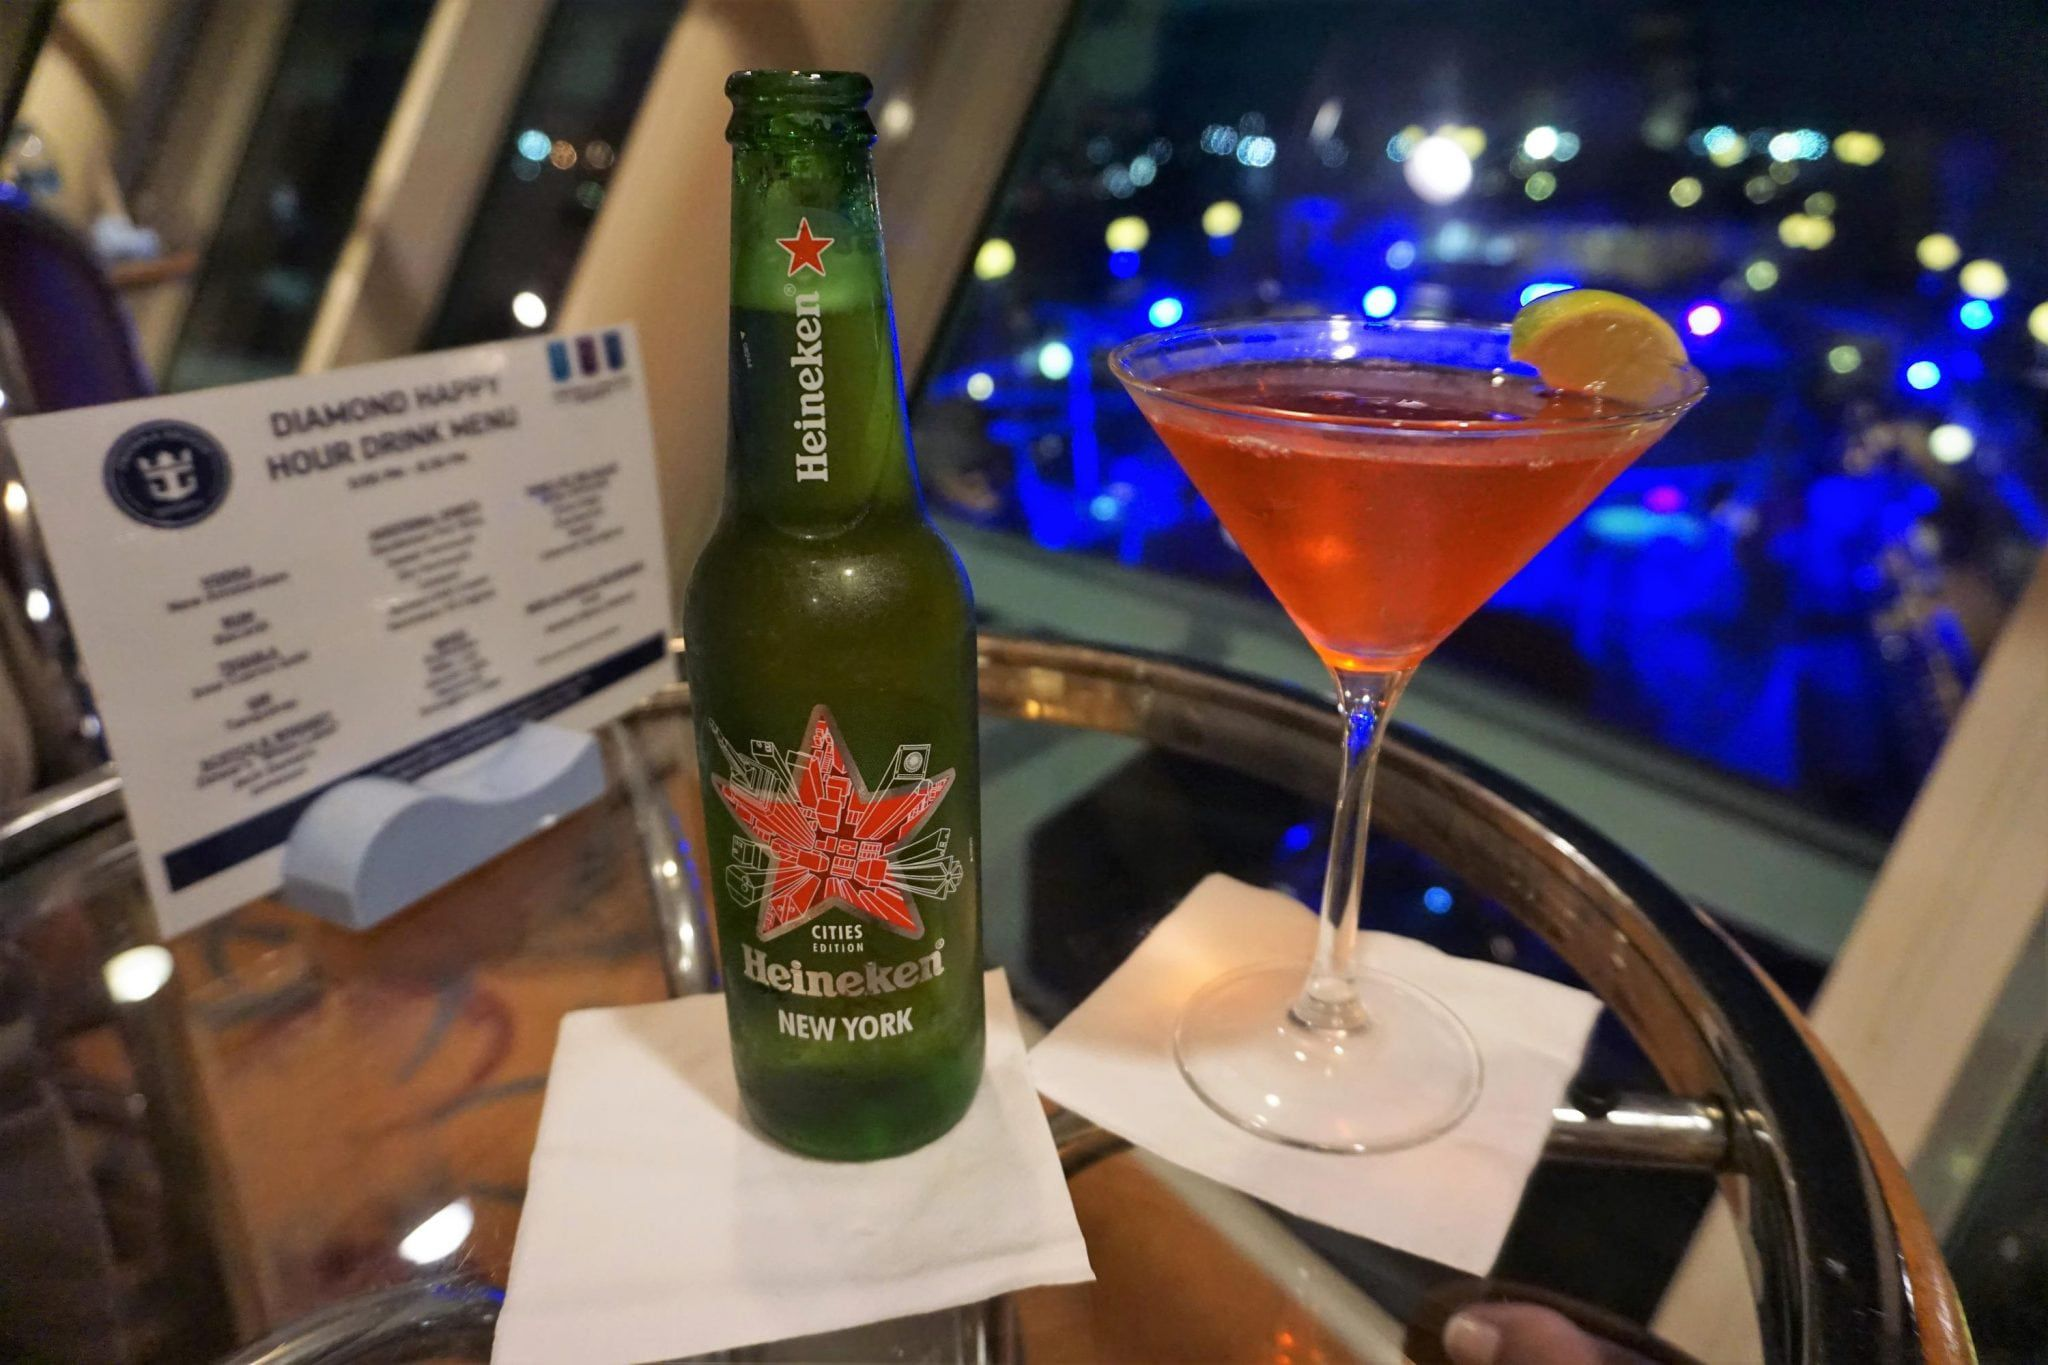 More Diamond Drinks on MAjesty of the Seas